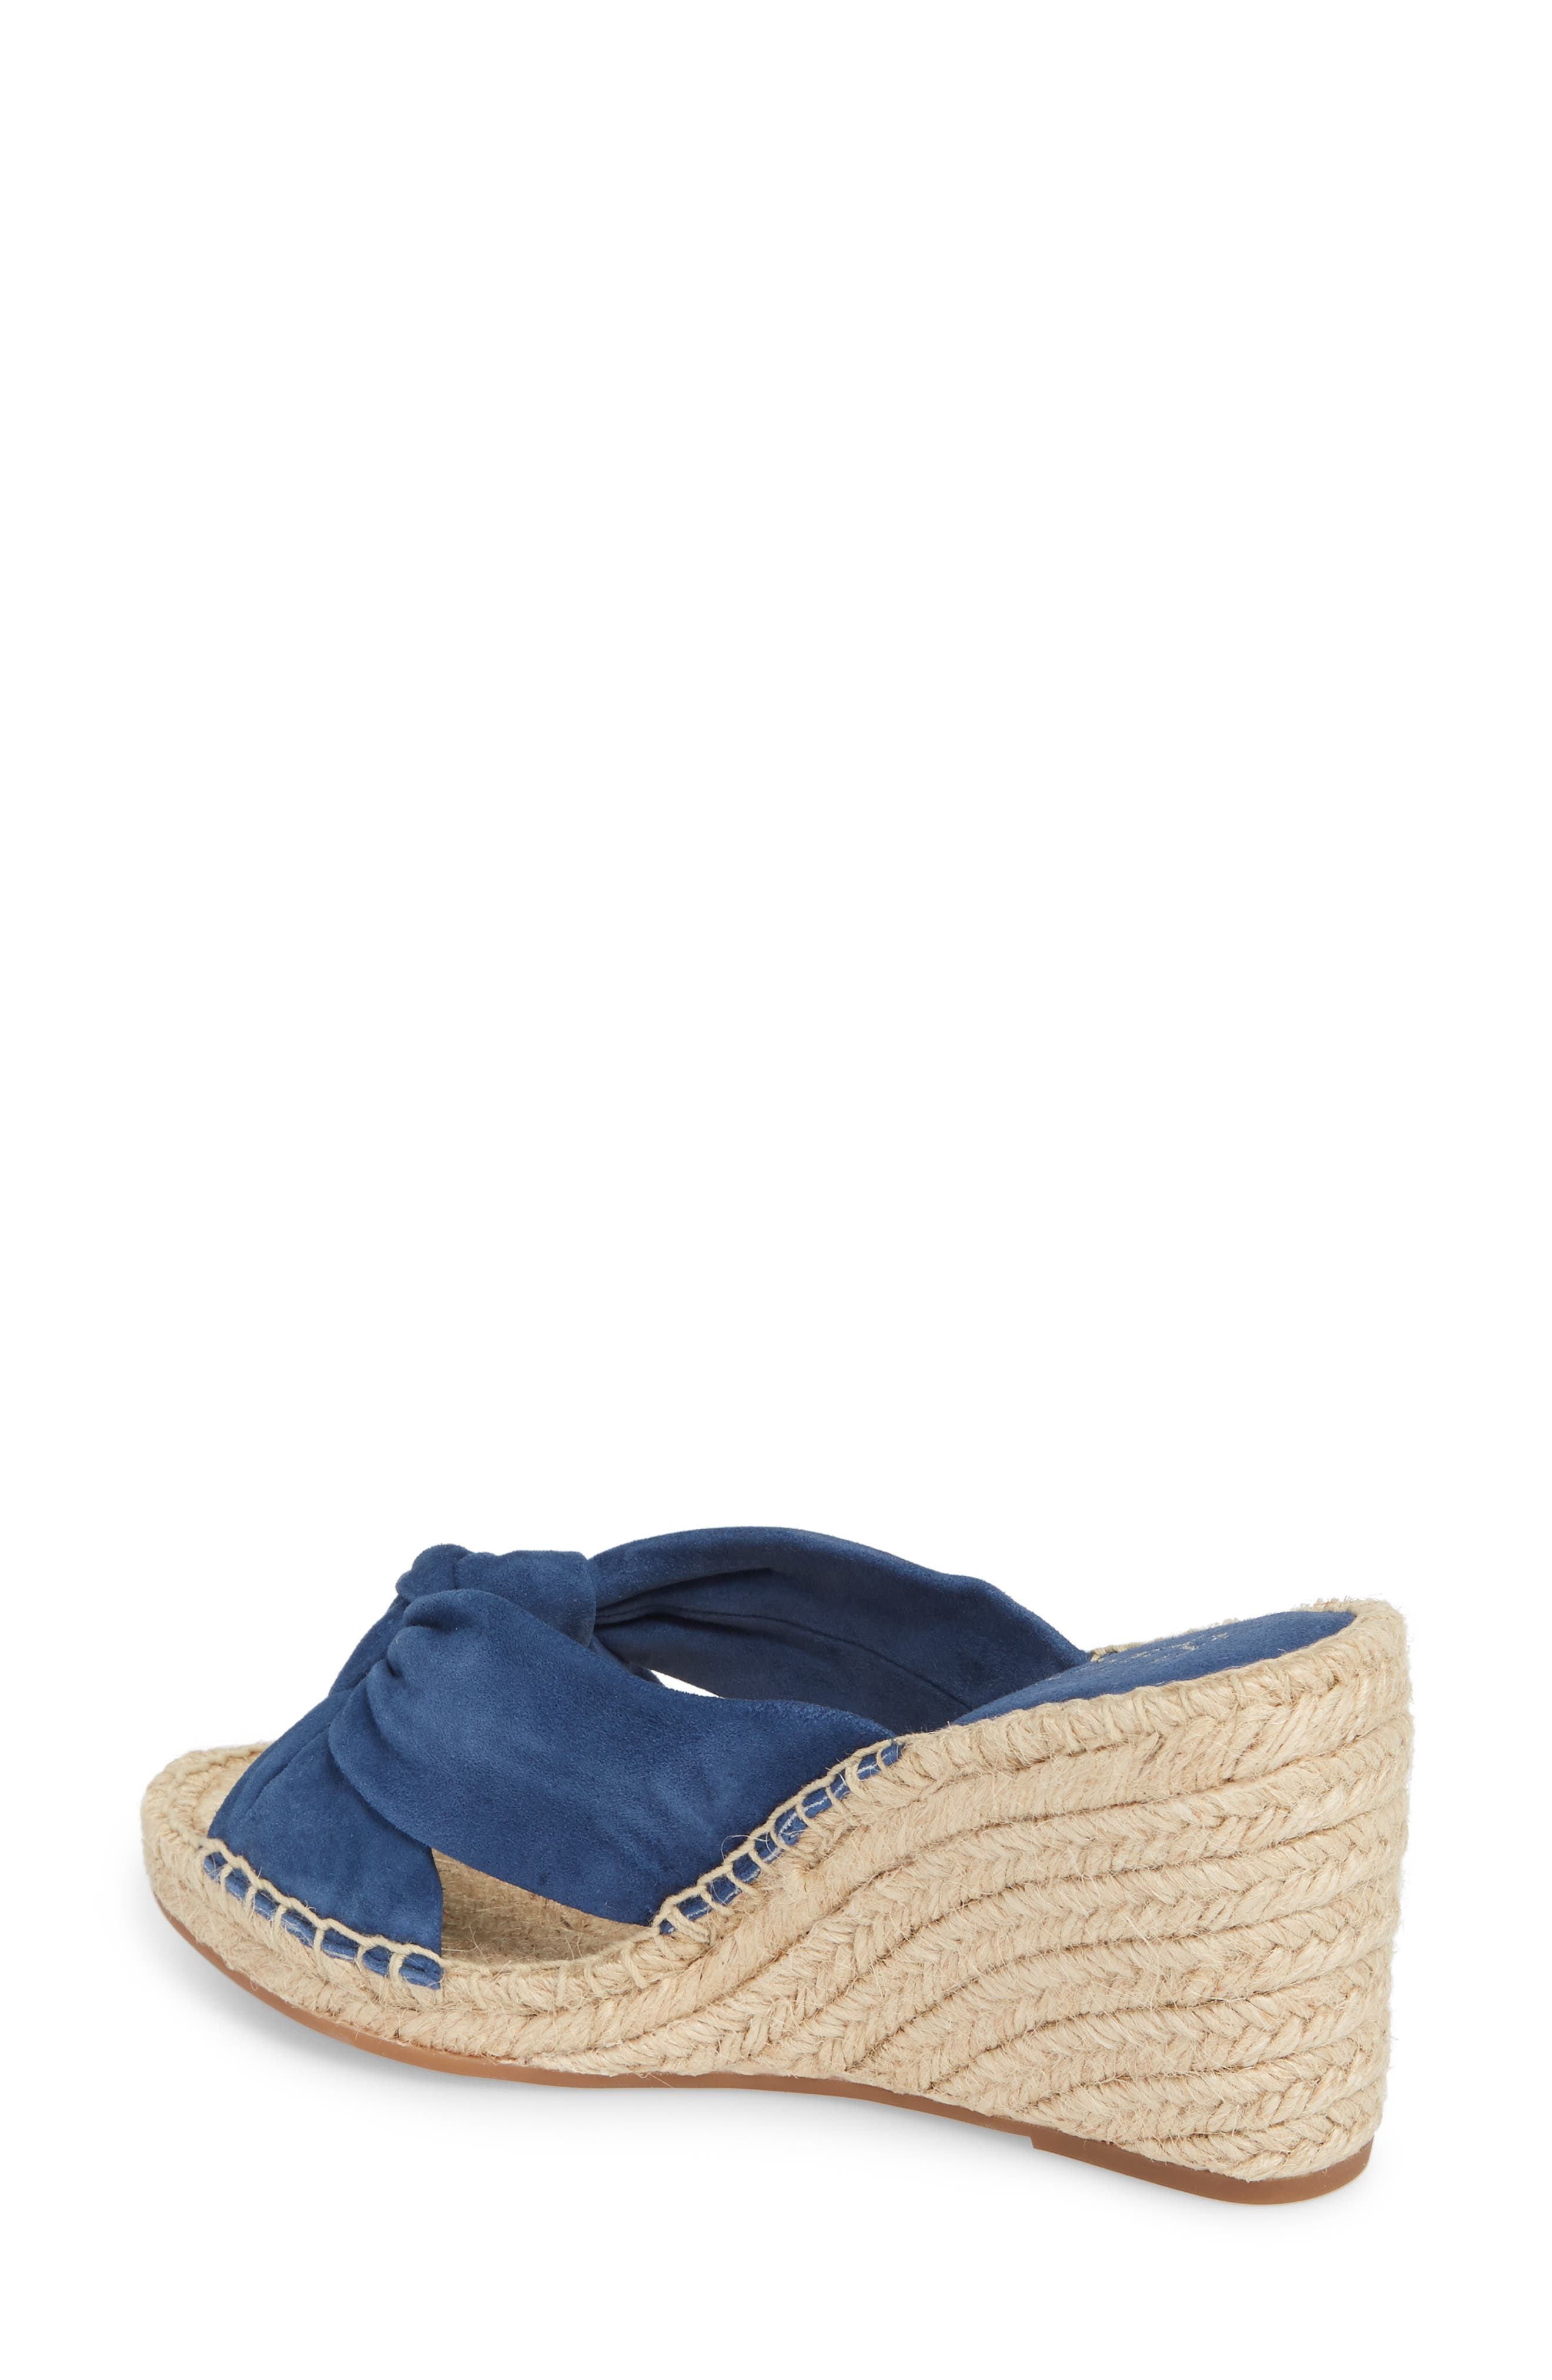 Bautista Knotted Wedge Sandal,                             Alternate thumbnail 2, color,                             Denim Fabric